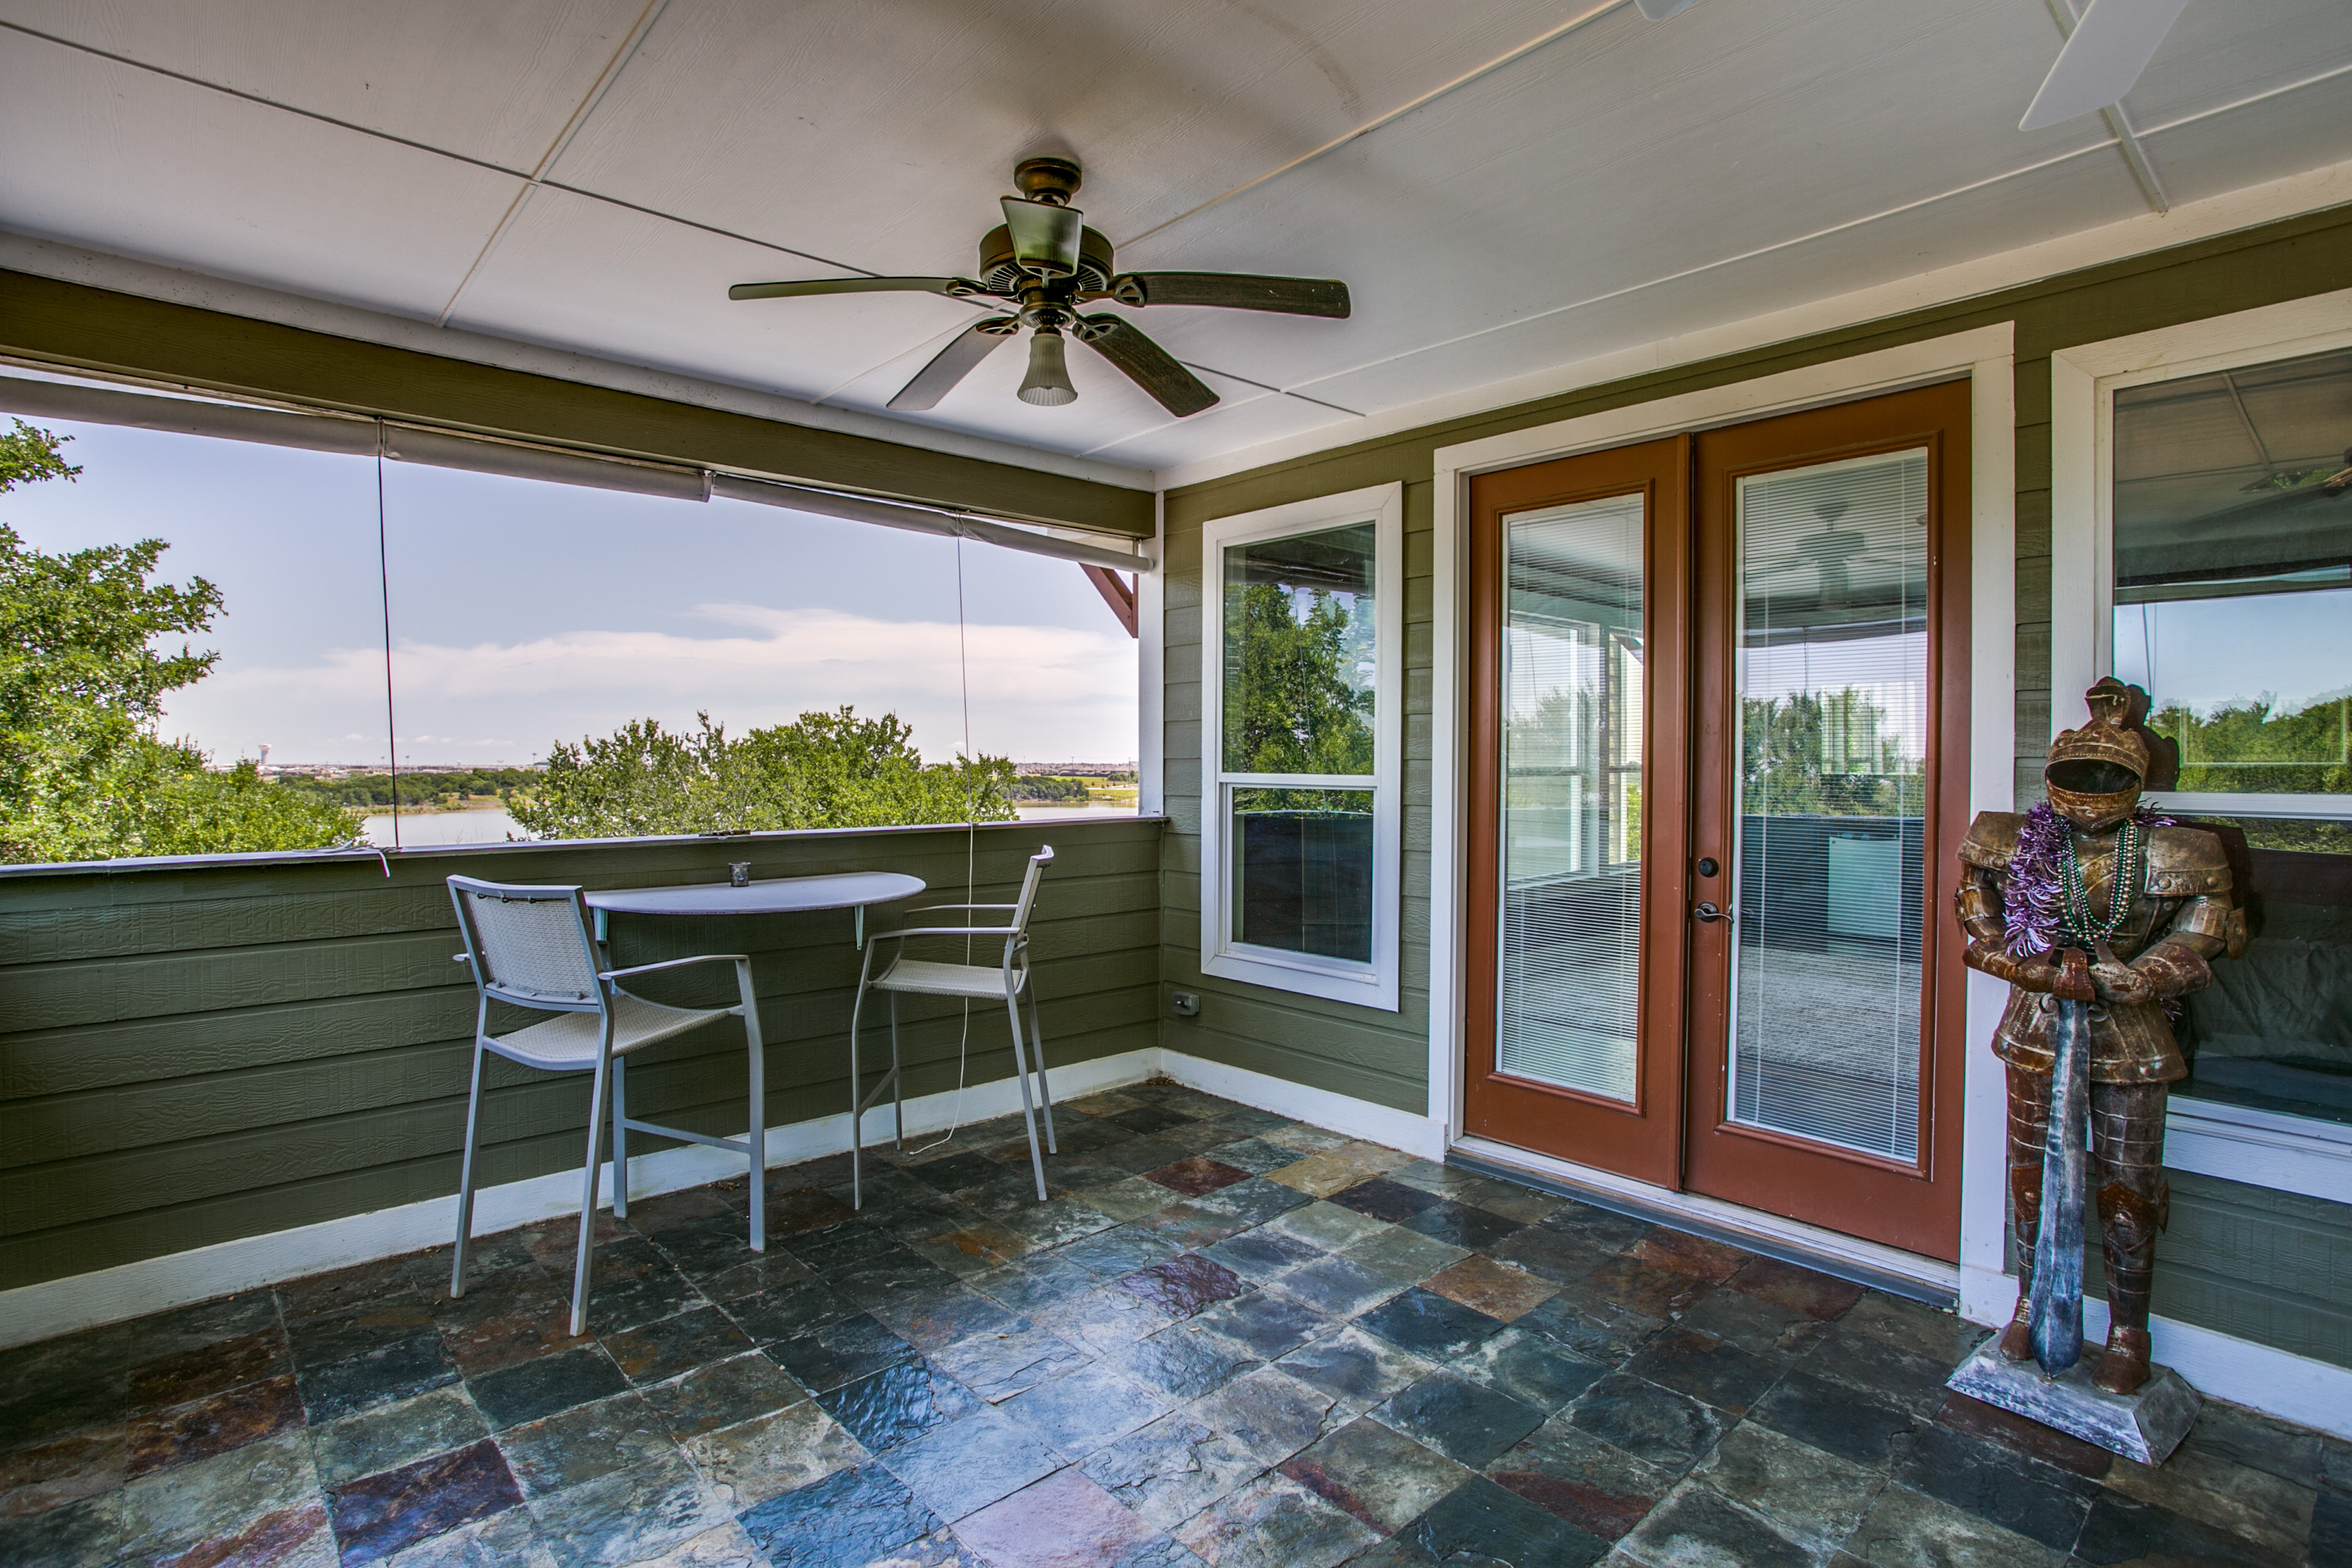 Again, great personality is seen in the Master suite's private balcony that opens to gorgeous Lake Lewisville.